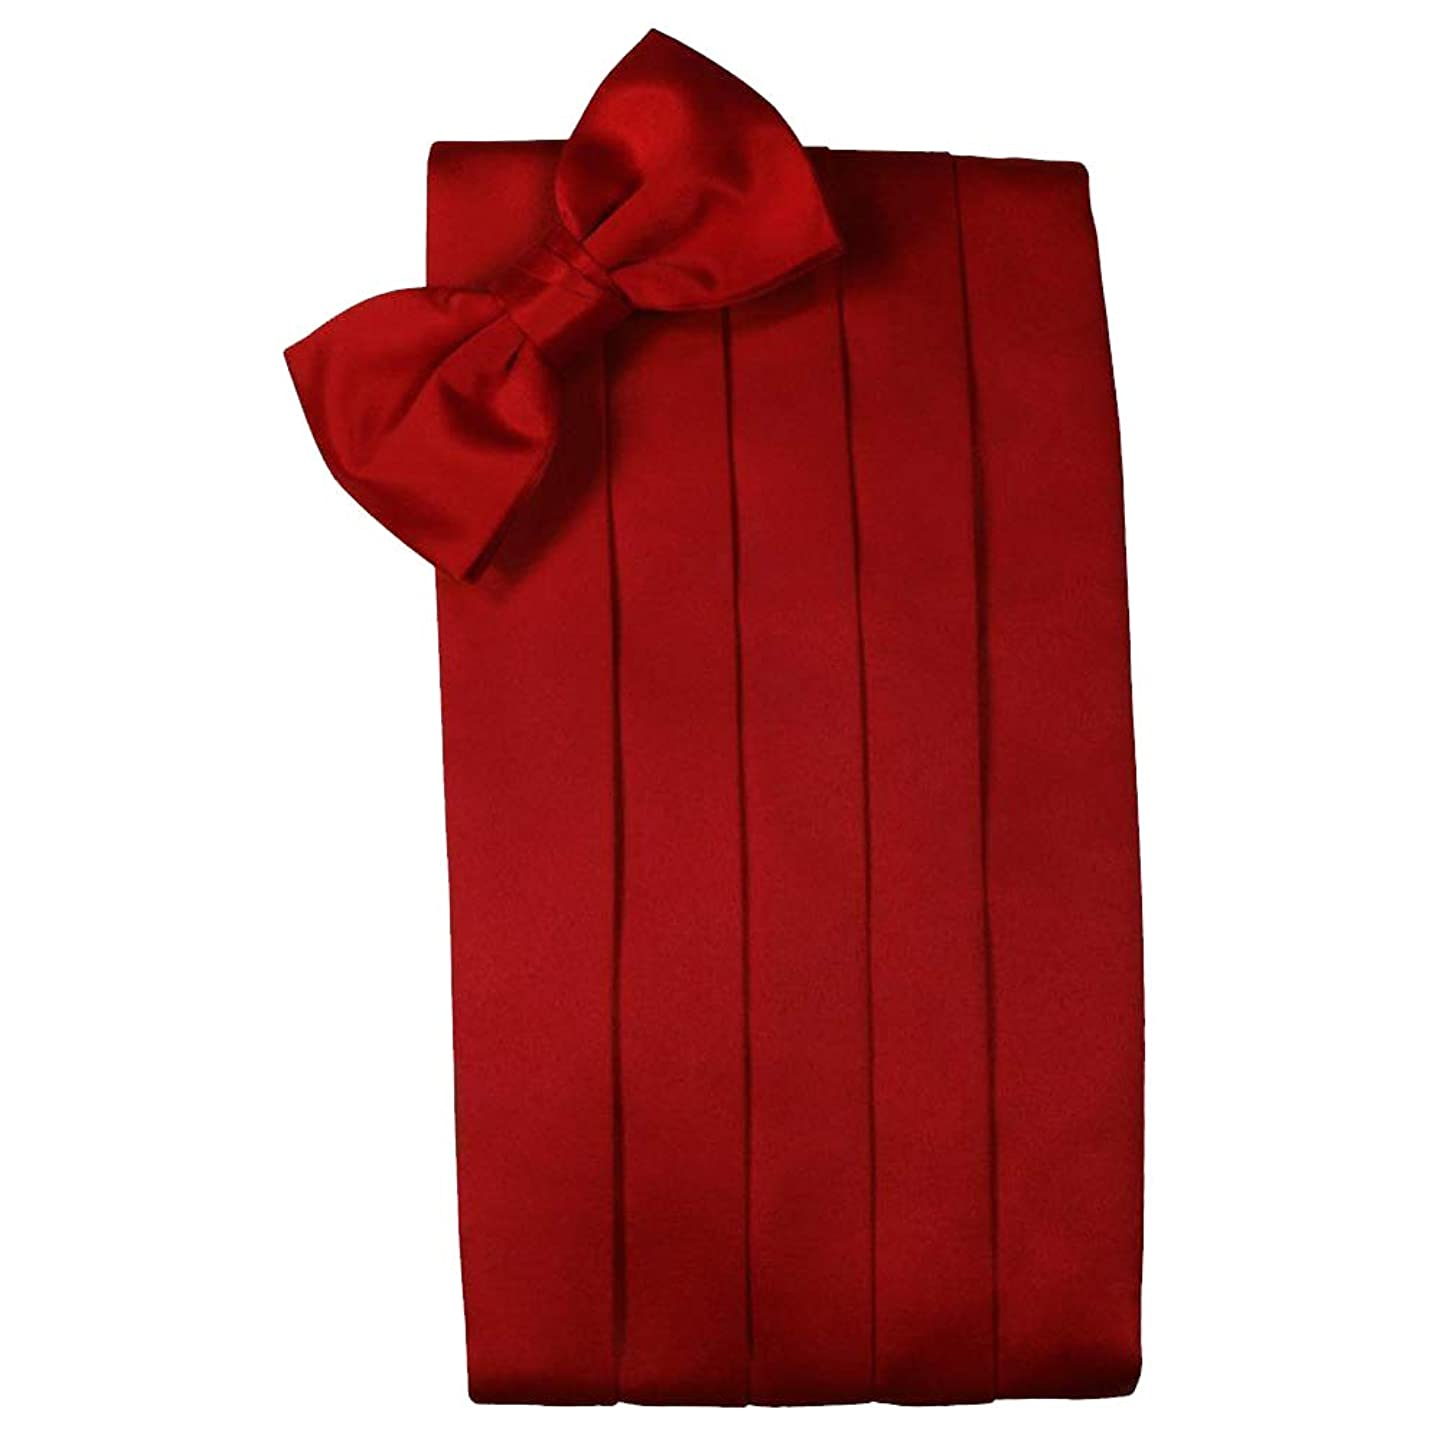 Men's Solid Satin Cummerbund & Bow Tie Set - Many Colors (Scarlet) dgbklzcvkda6